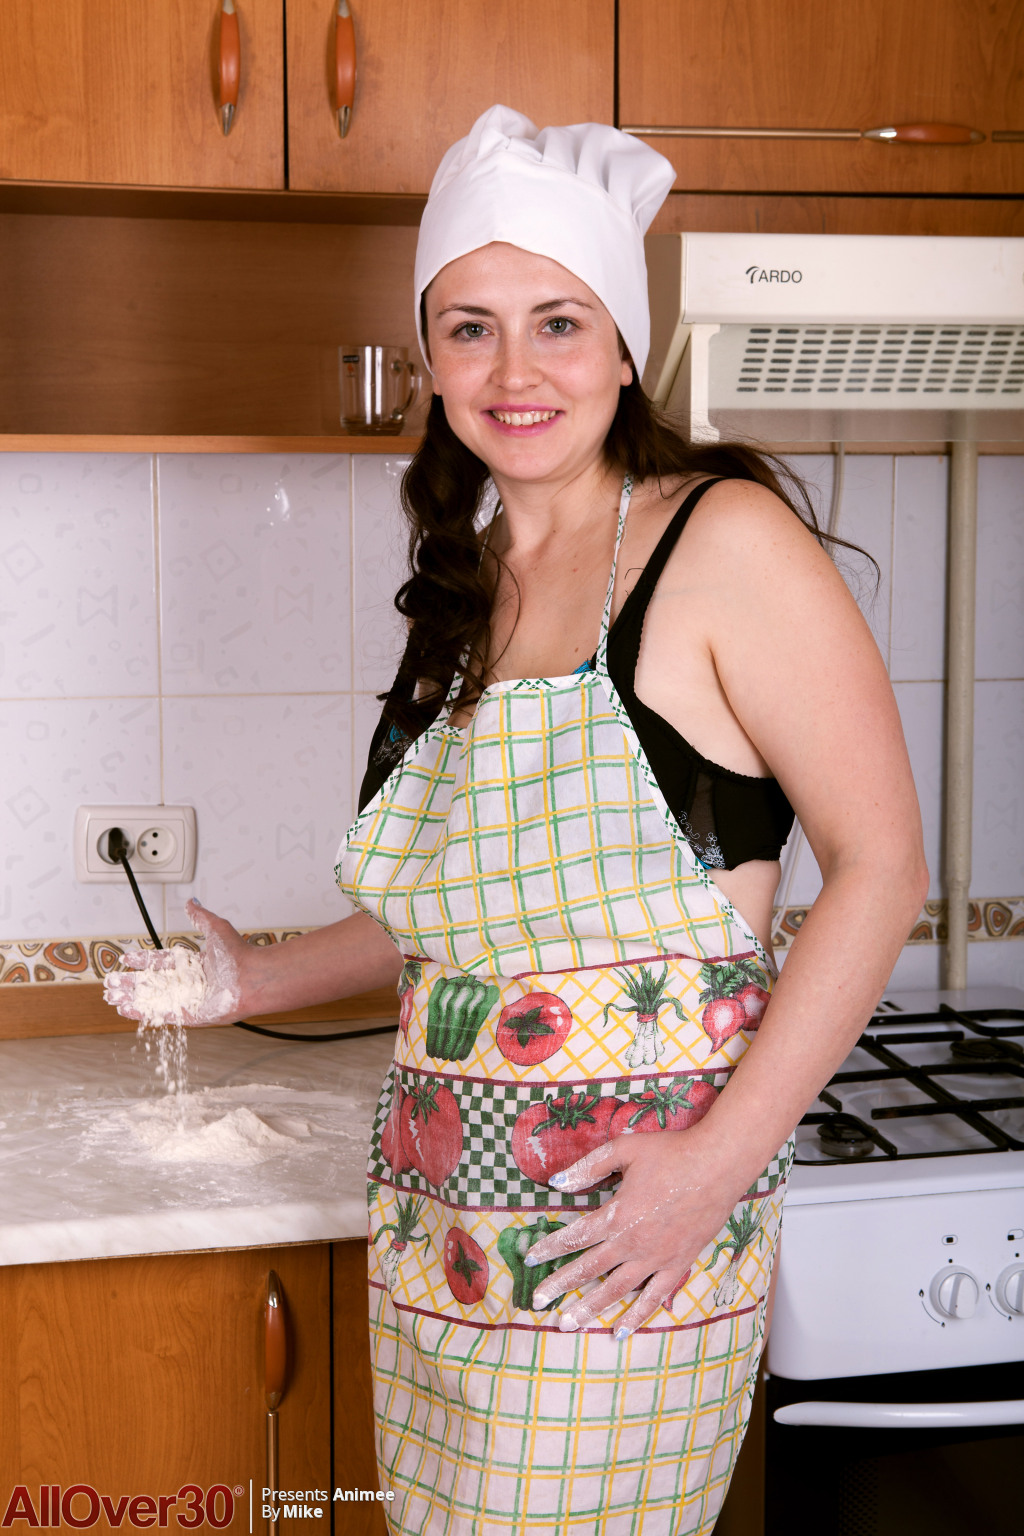 animee-hot-chef-02